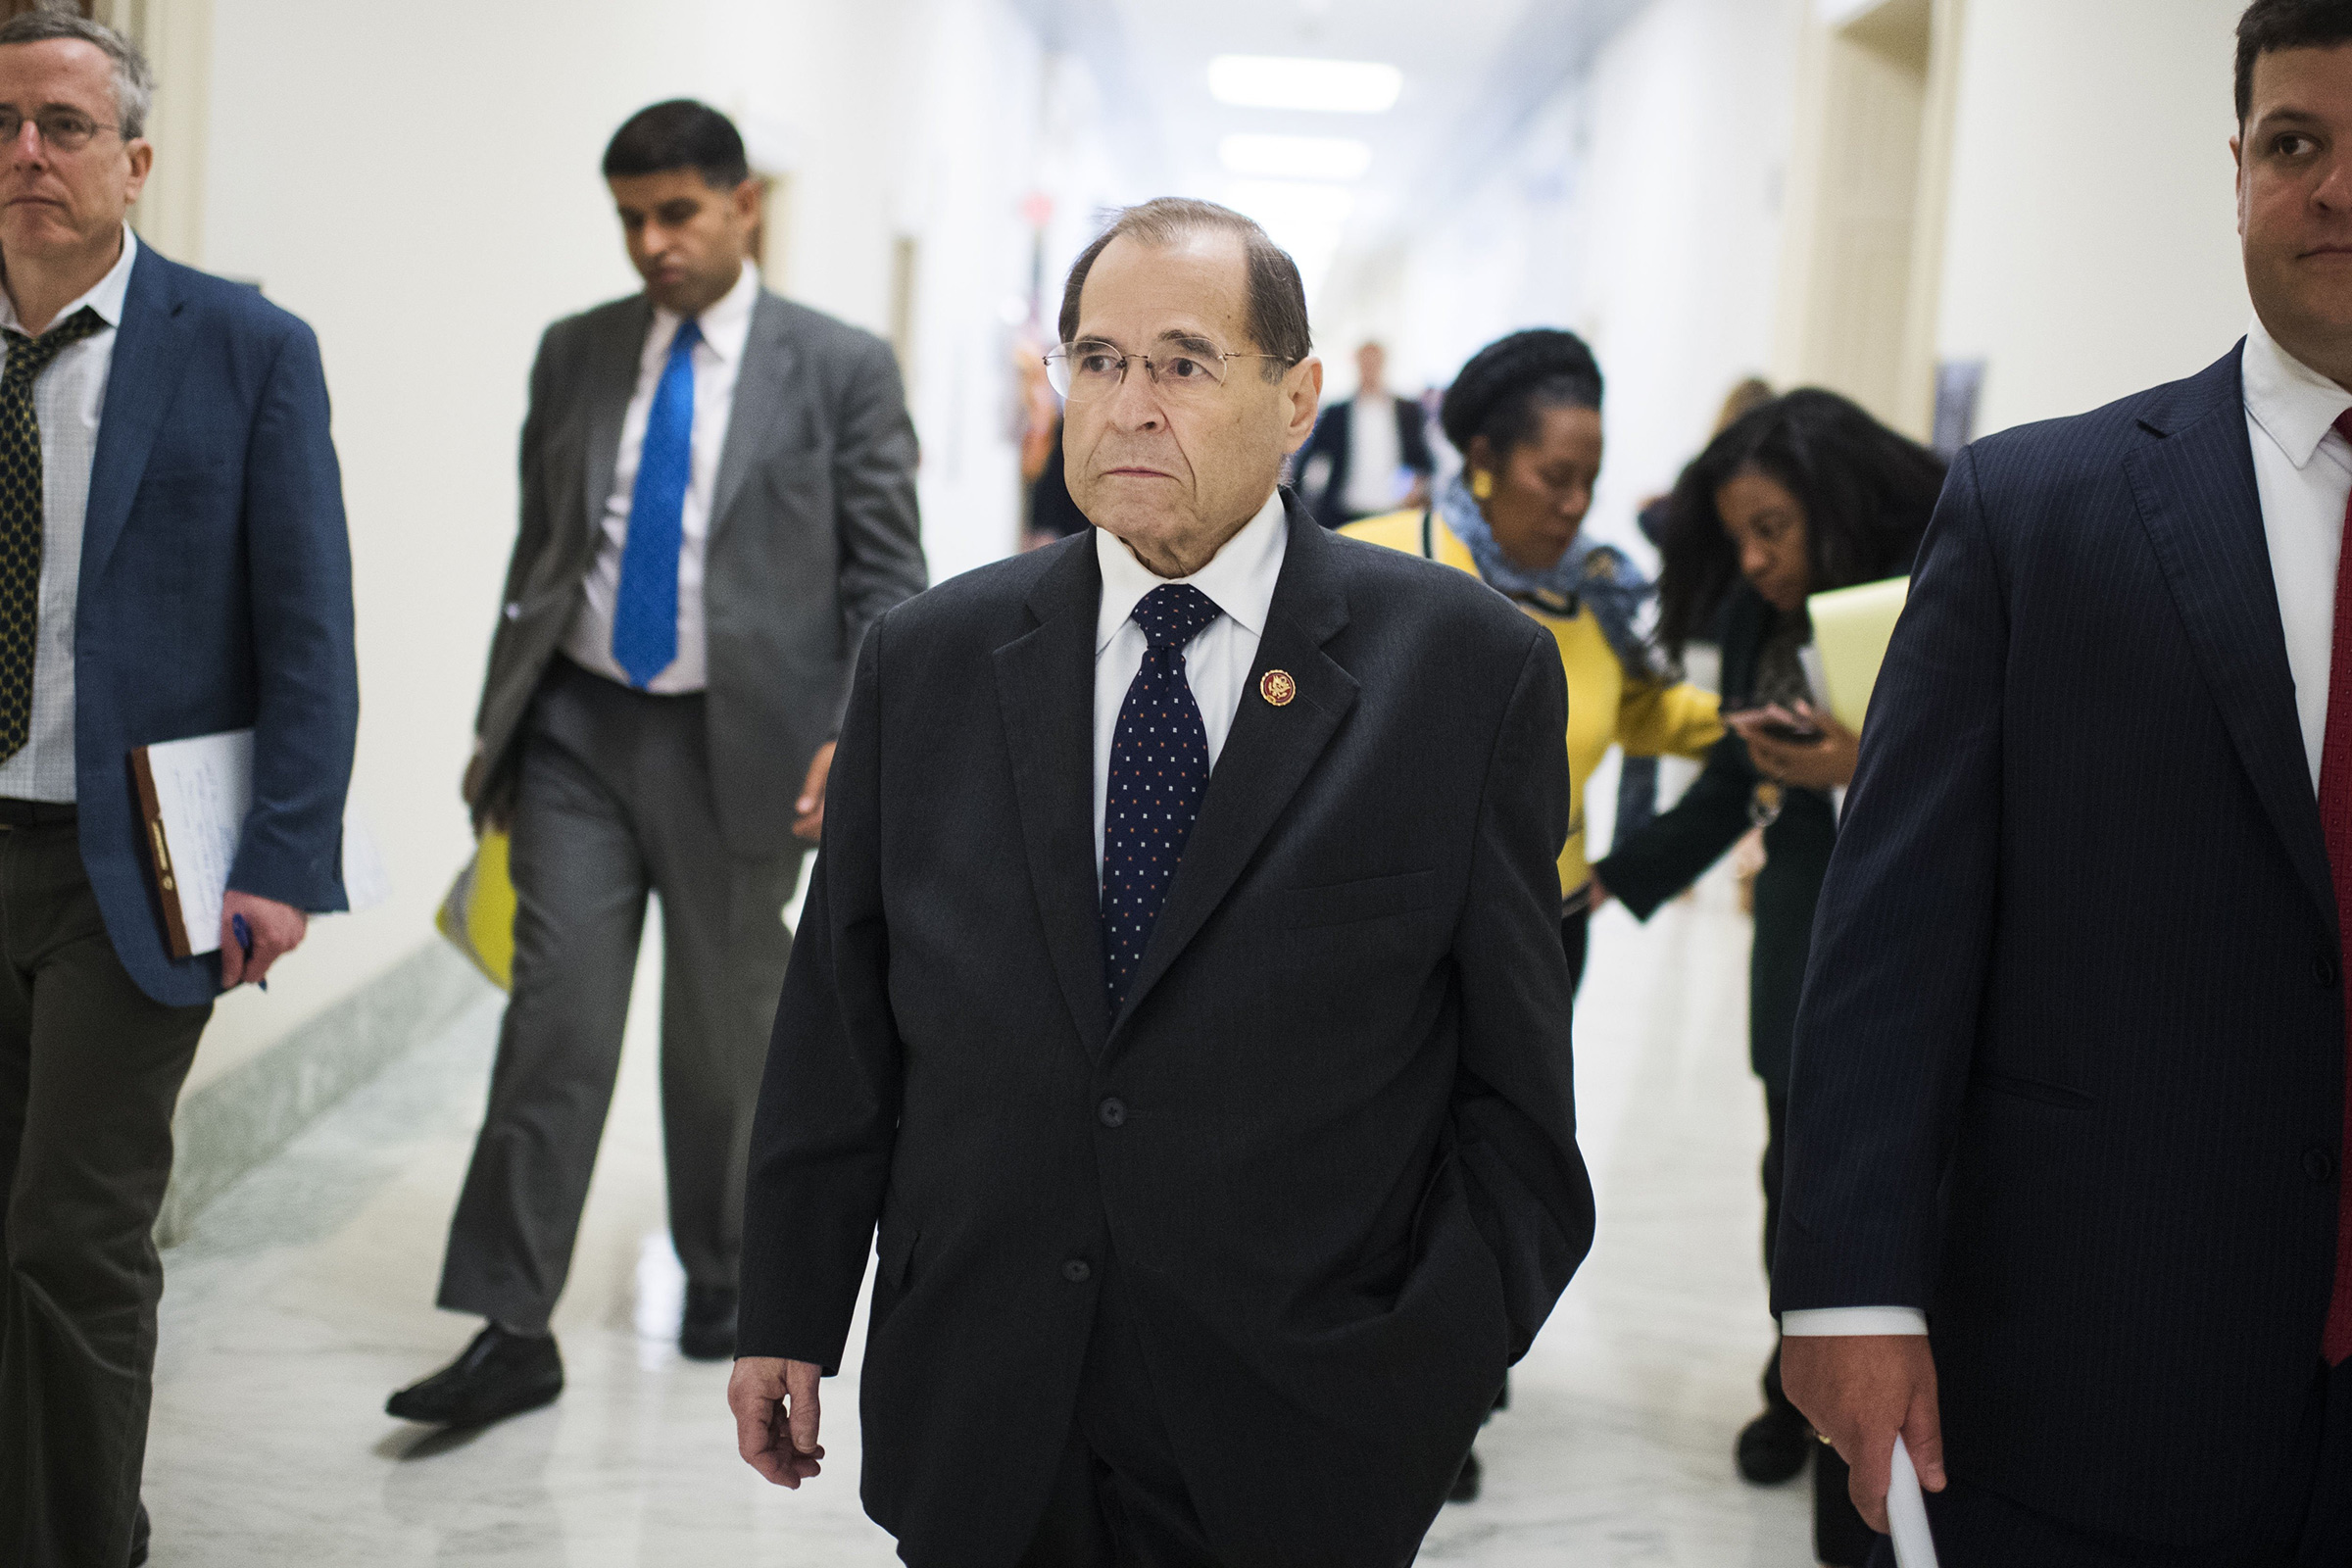 Chairman Jerrold Nadler, D-N.Y., is seen after a House Judiciary Committee hearing in Rayburn Building, Washington, D.C. on May 2, 2019.